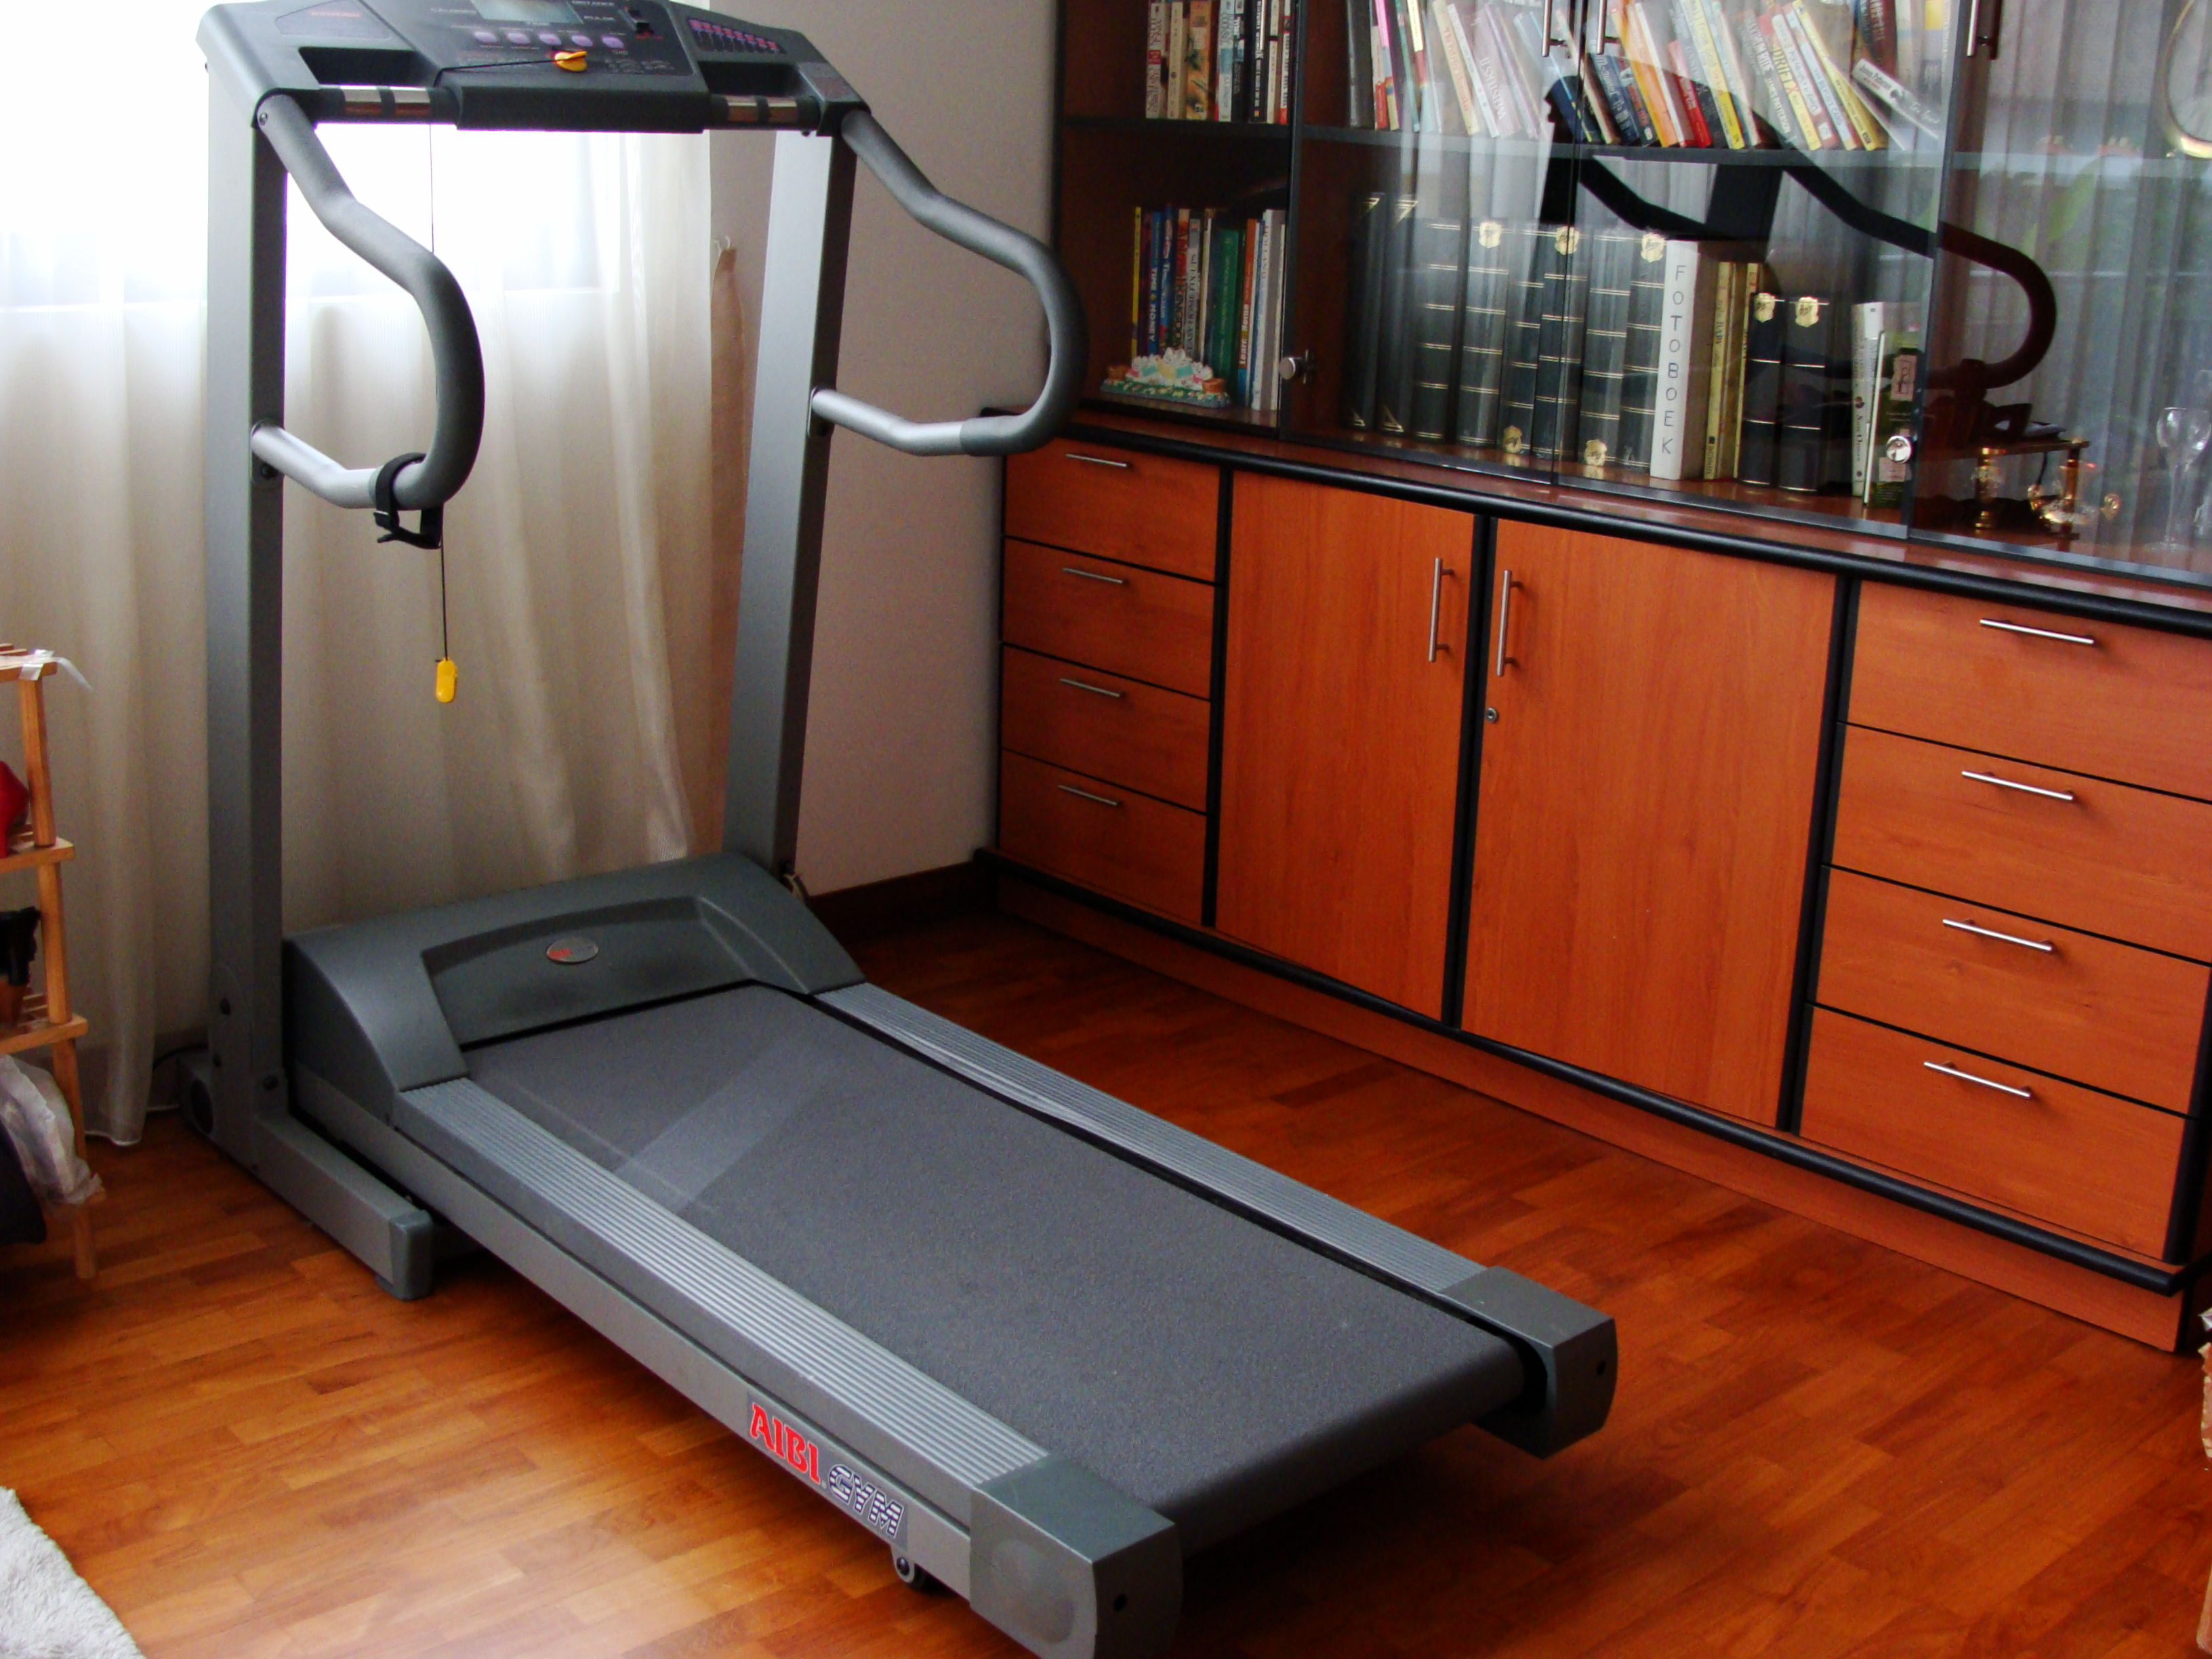 FOR SALE: For Sale AIBI Treadmill